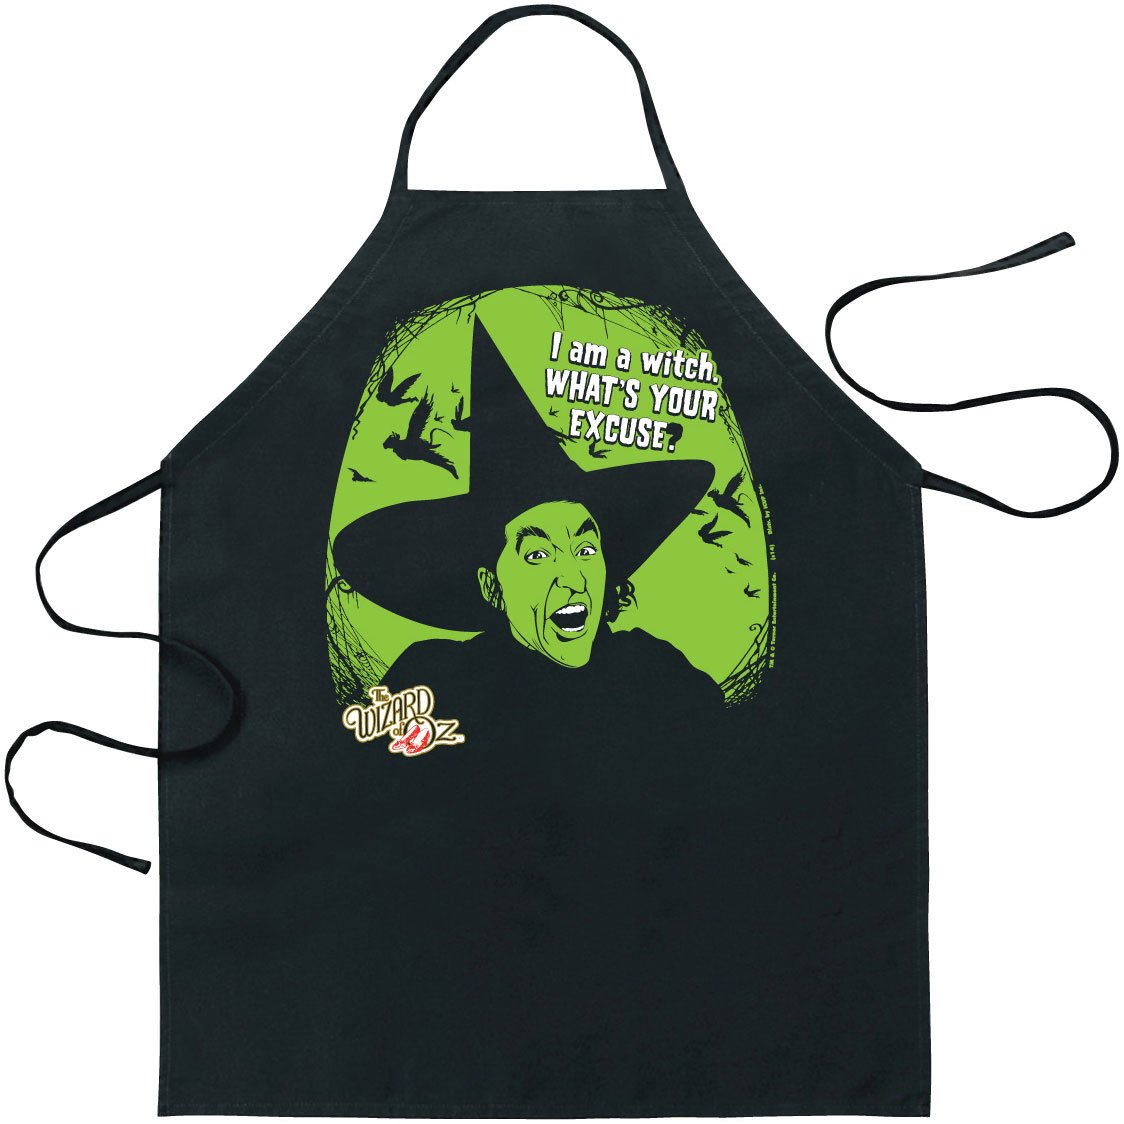 ICUP Wizard of Oz I Am a Witch Apron, Clear 06905